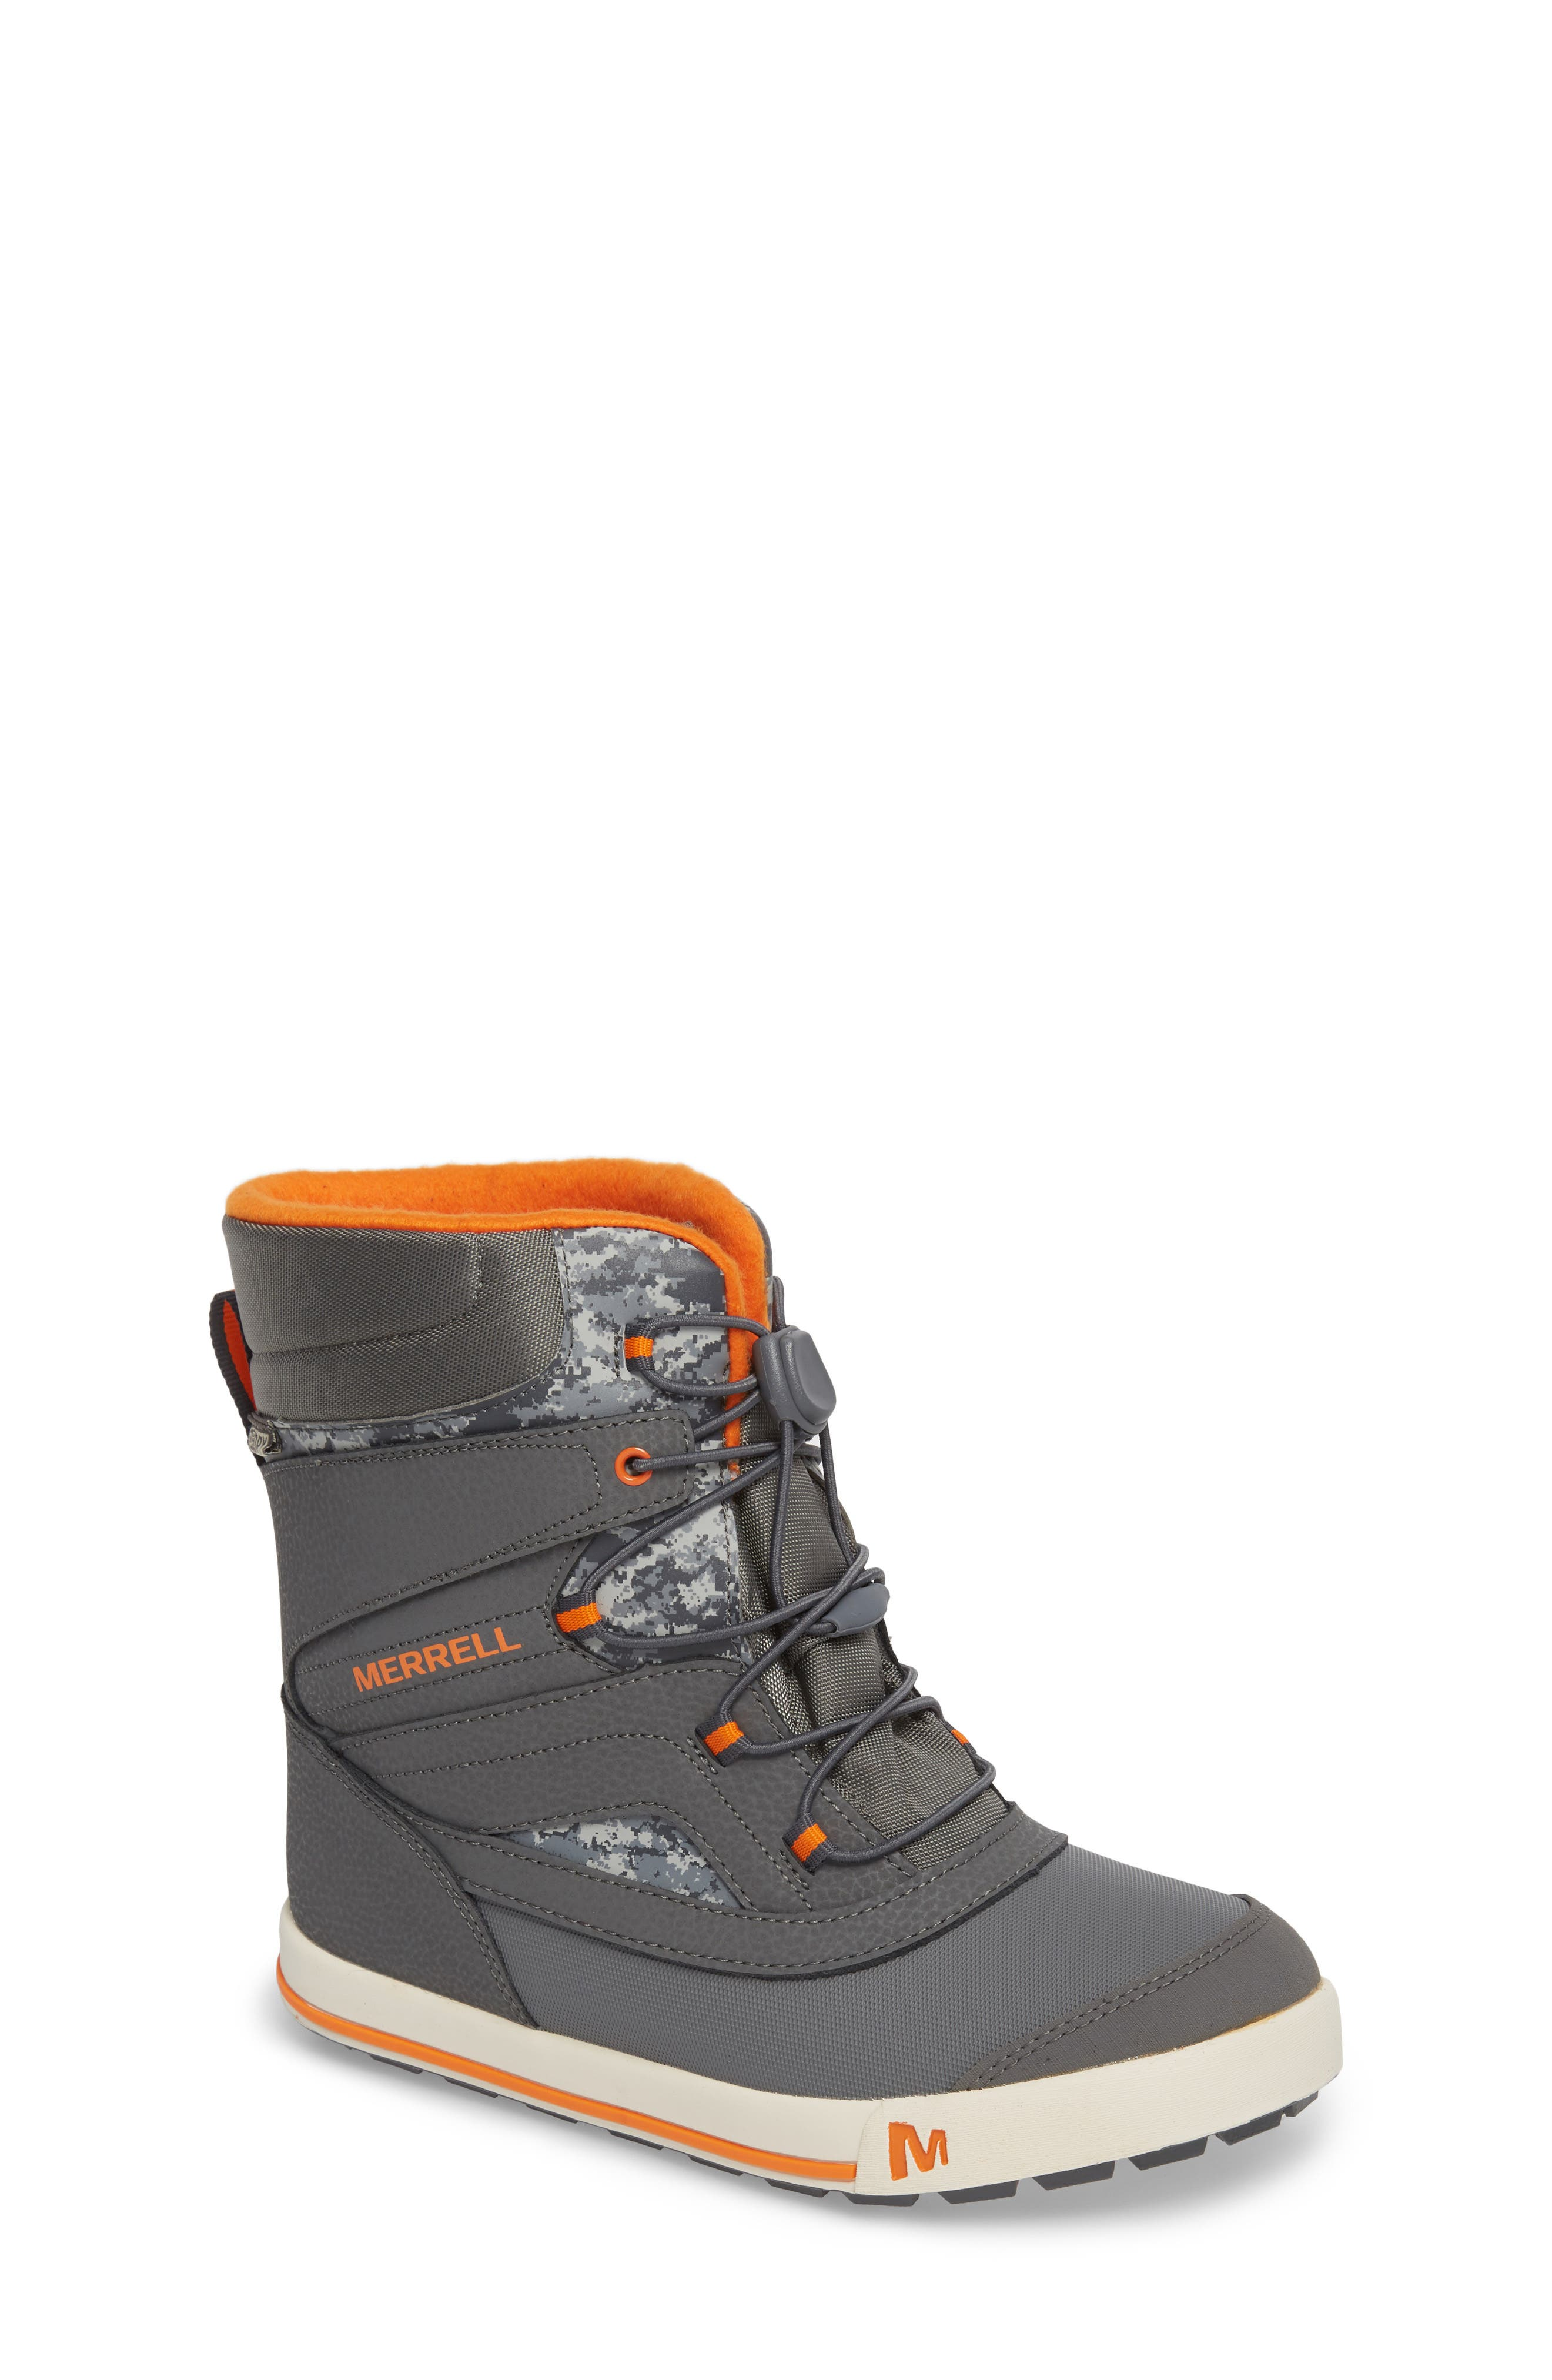 Snow Bank 2 Insulated Waterproof Boot,                         Main,                         color, Grey/ Orange